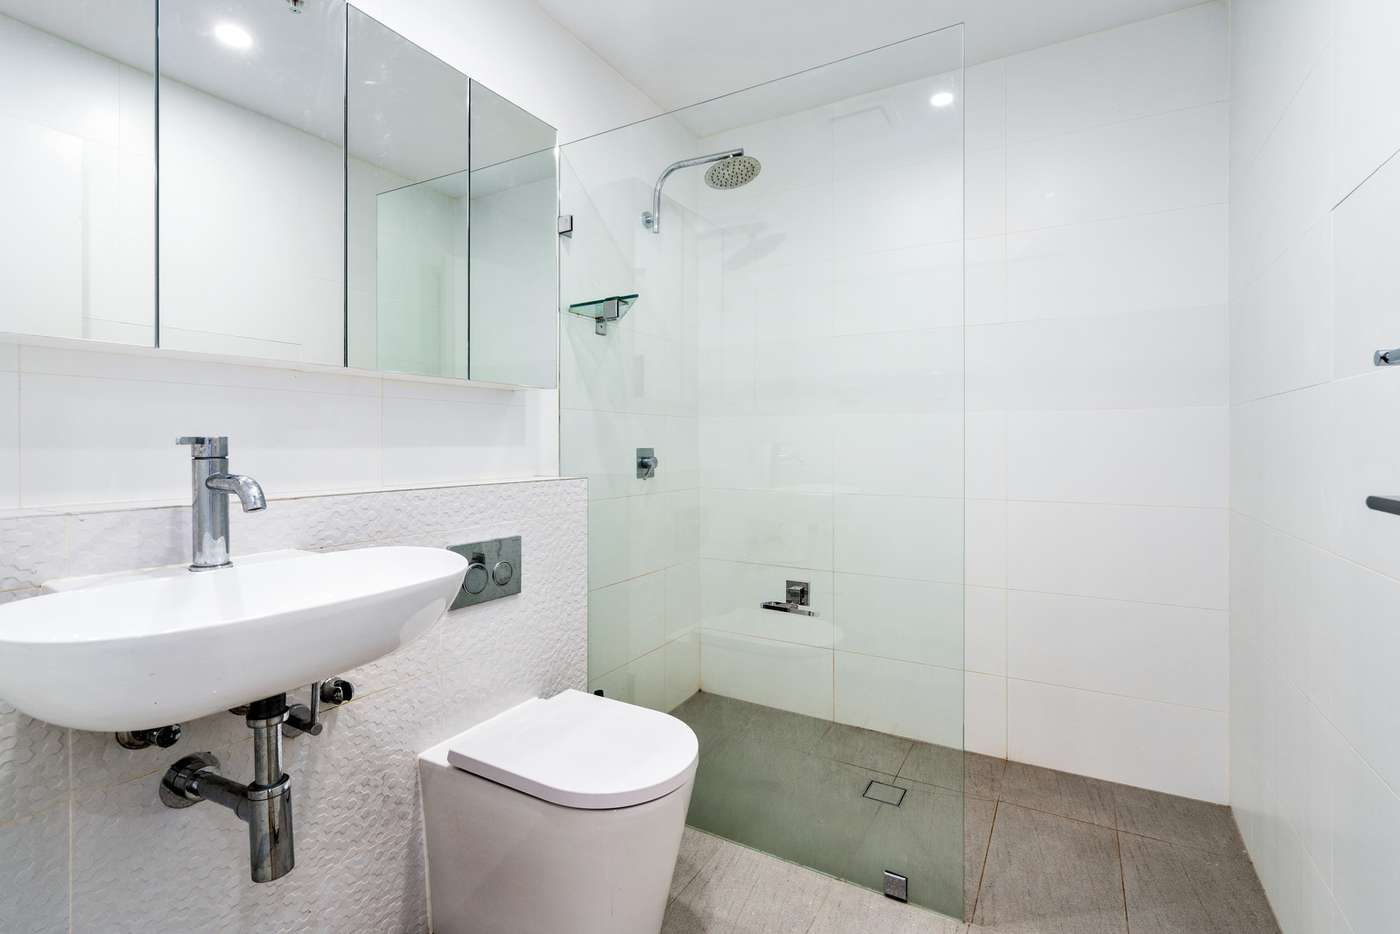 Fifth view of Homely apartment listing, A801/35 Rawson Street, Auburn NSW 2144